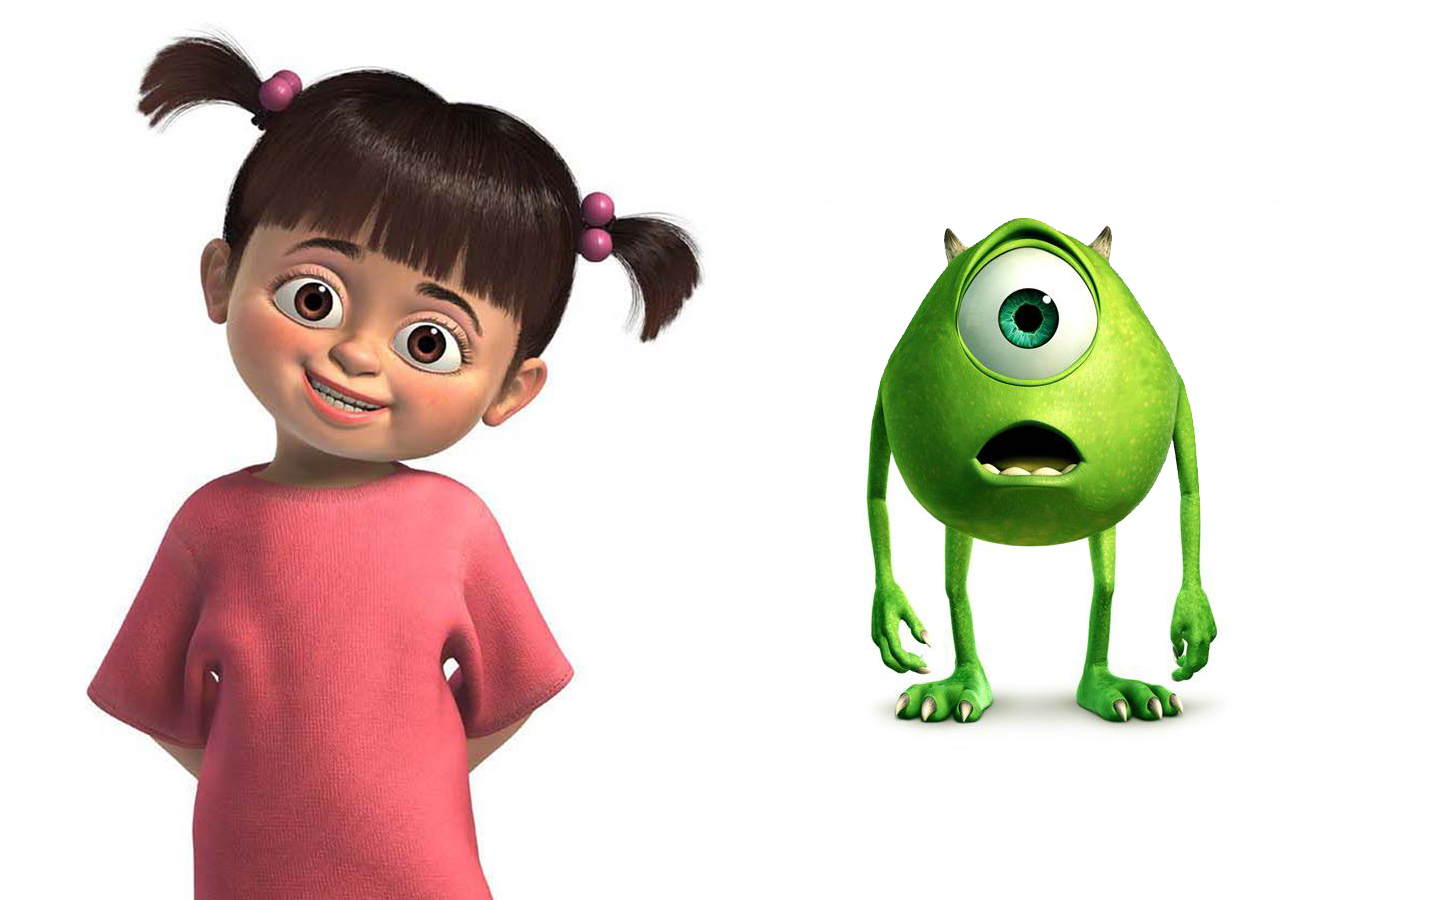 Cute Baby With Teddy Bear Wallpapers Animation Monsters Inc Wallpaper A Cartoon Movie